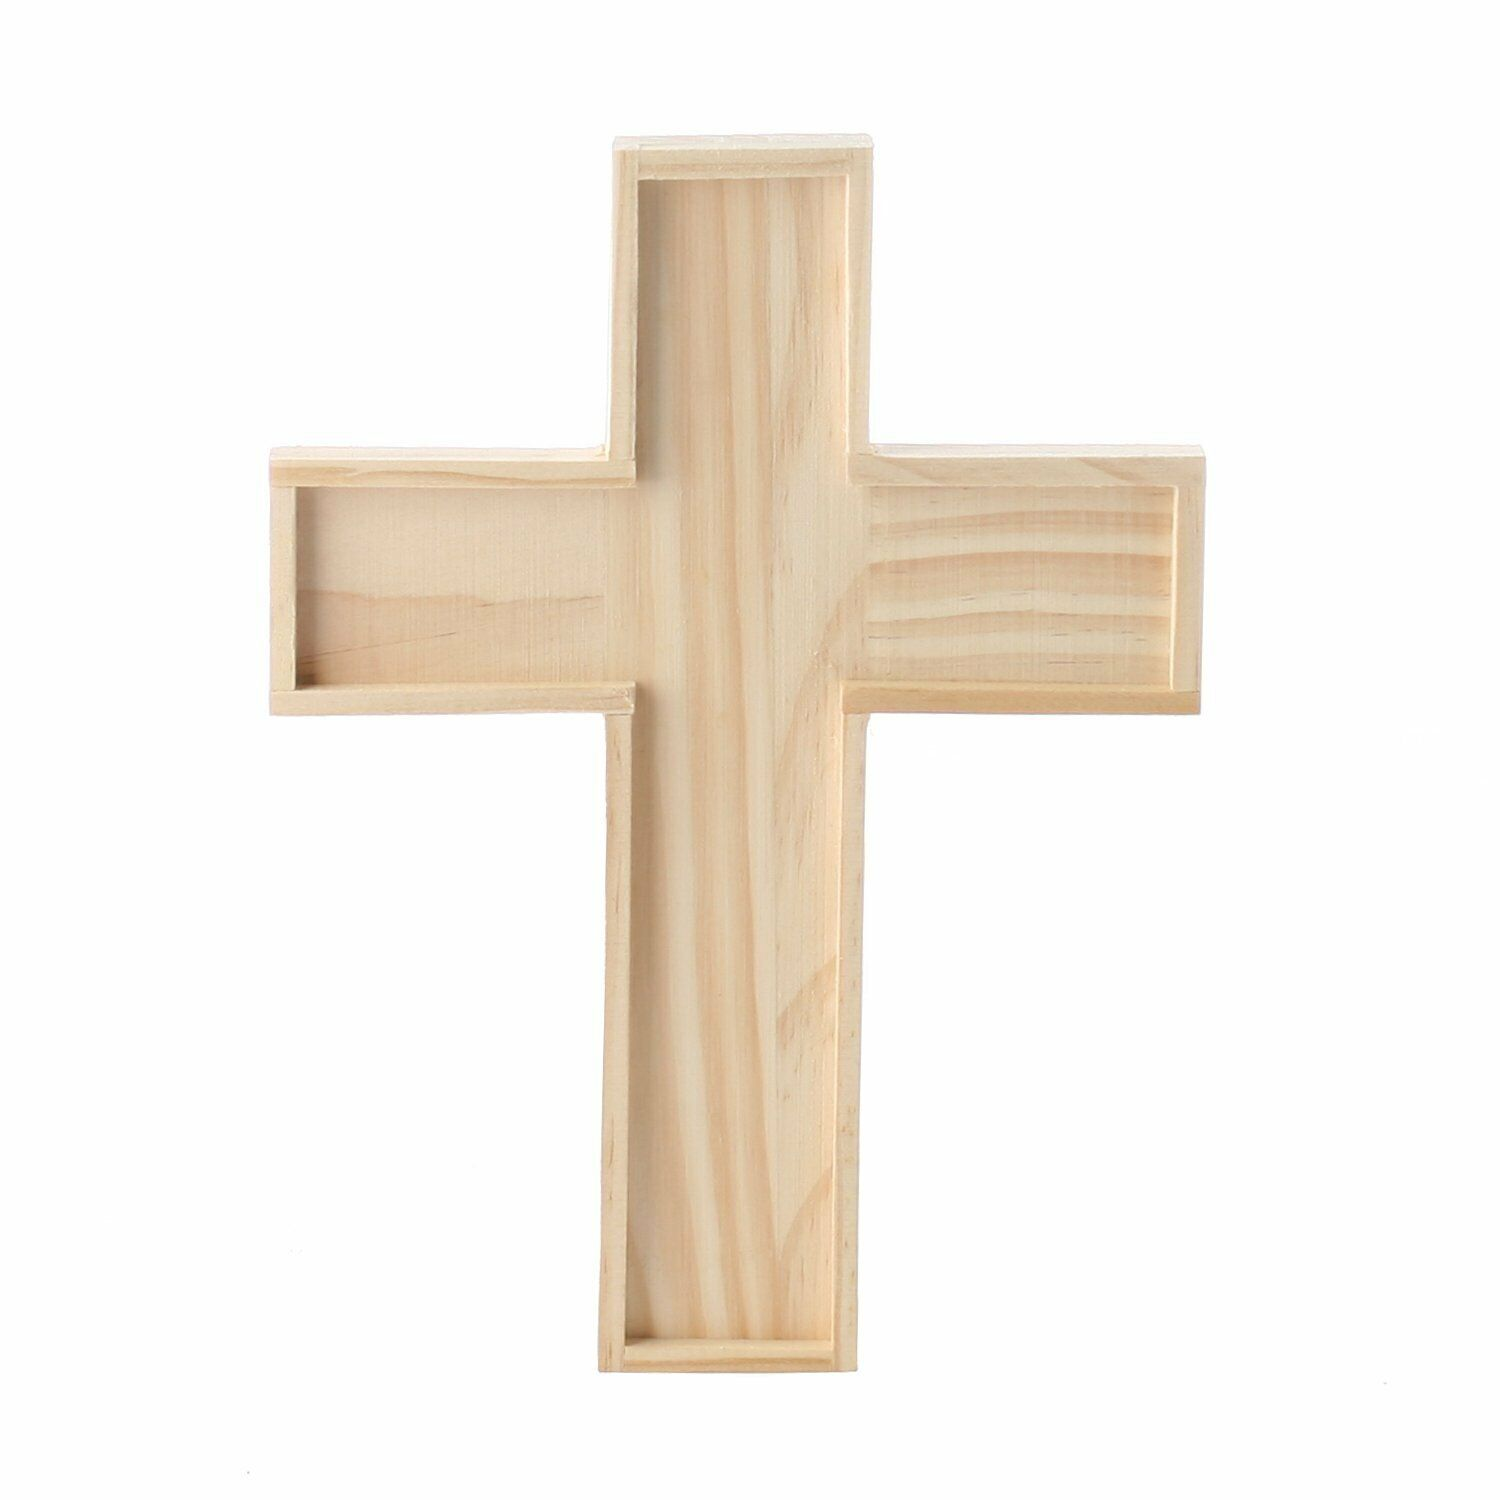 Unfinished Wooden Crosses for Painting and Crafting | 6 Crosses Crafting Pieces